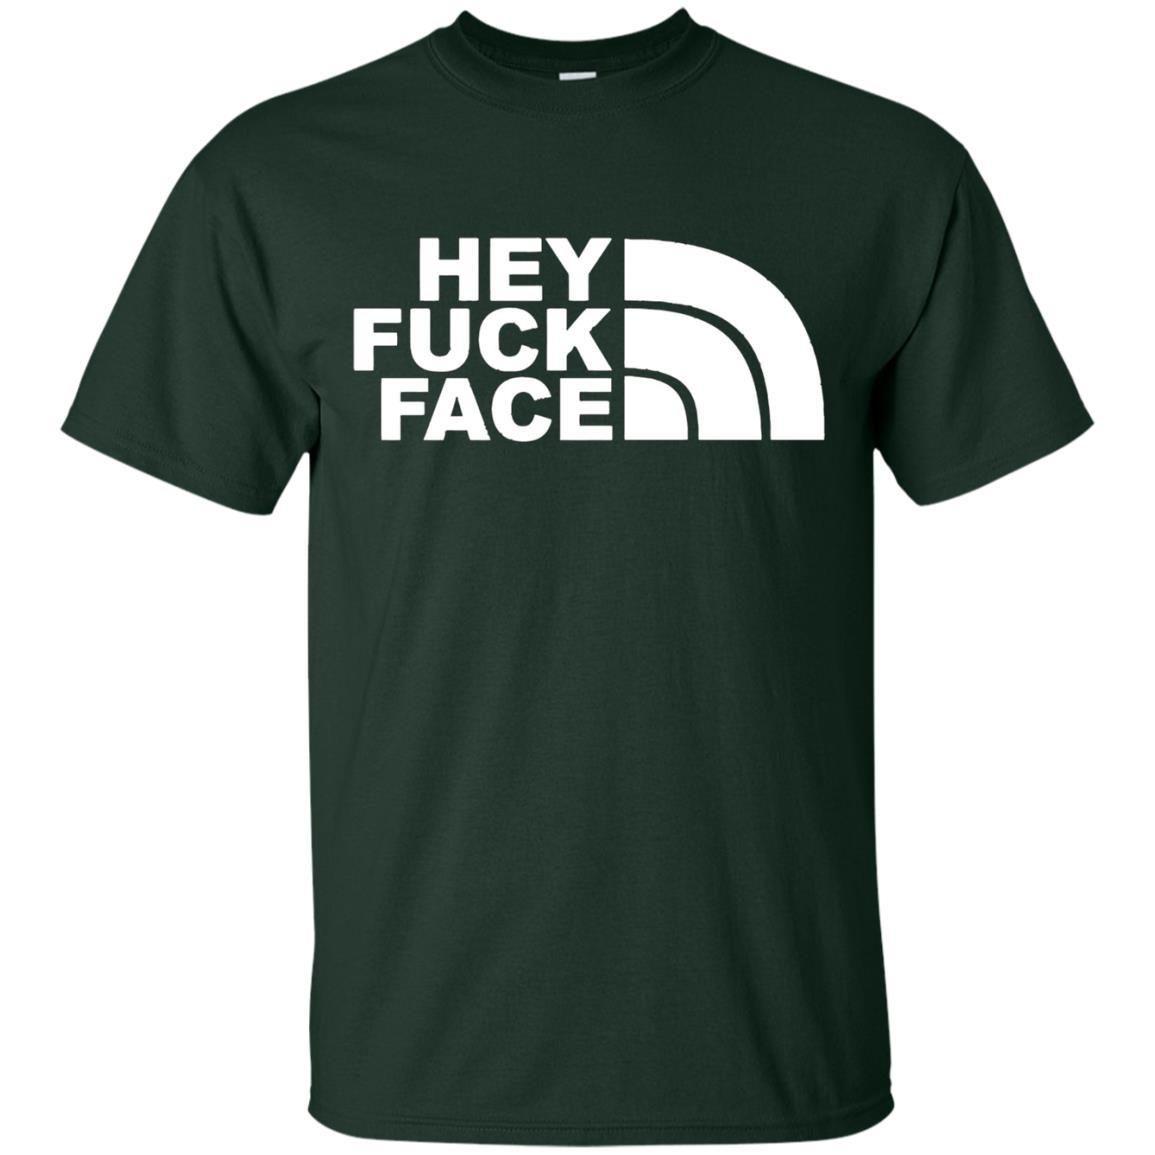 HEY FUCK FACE T-SHIRT Forest / 5XL